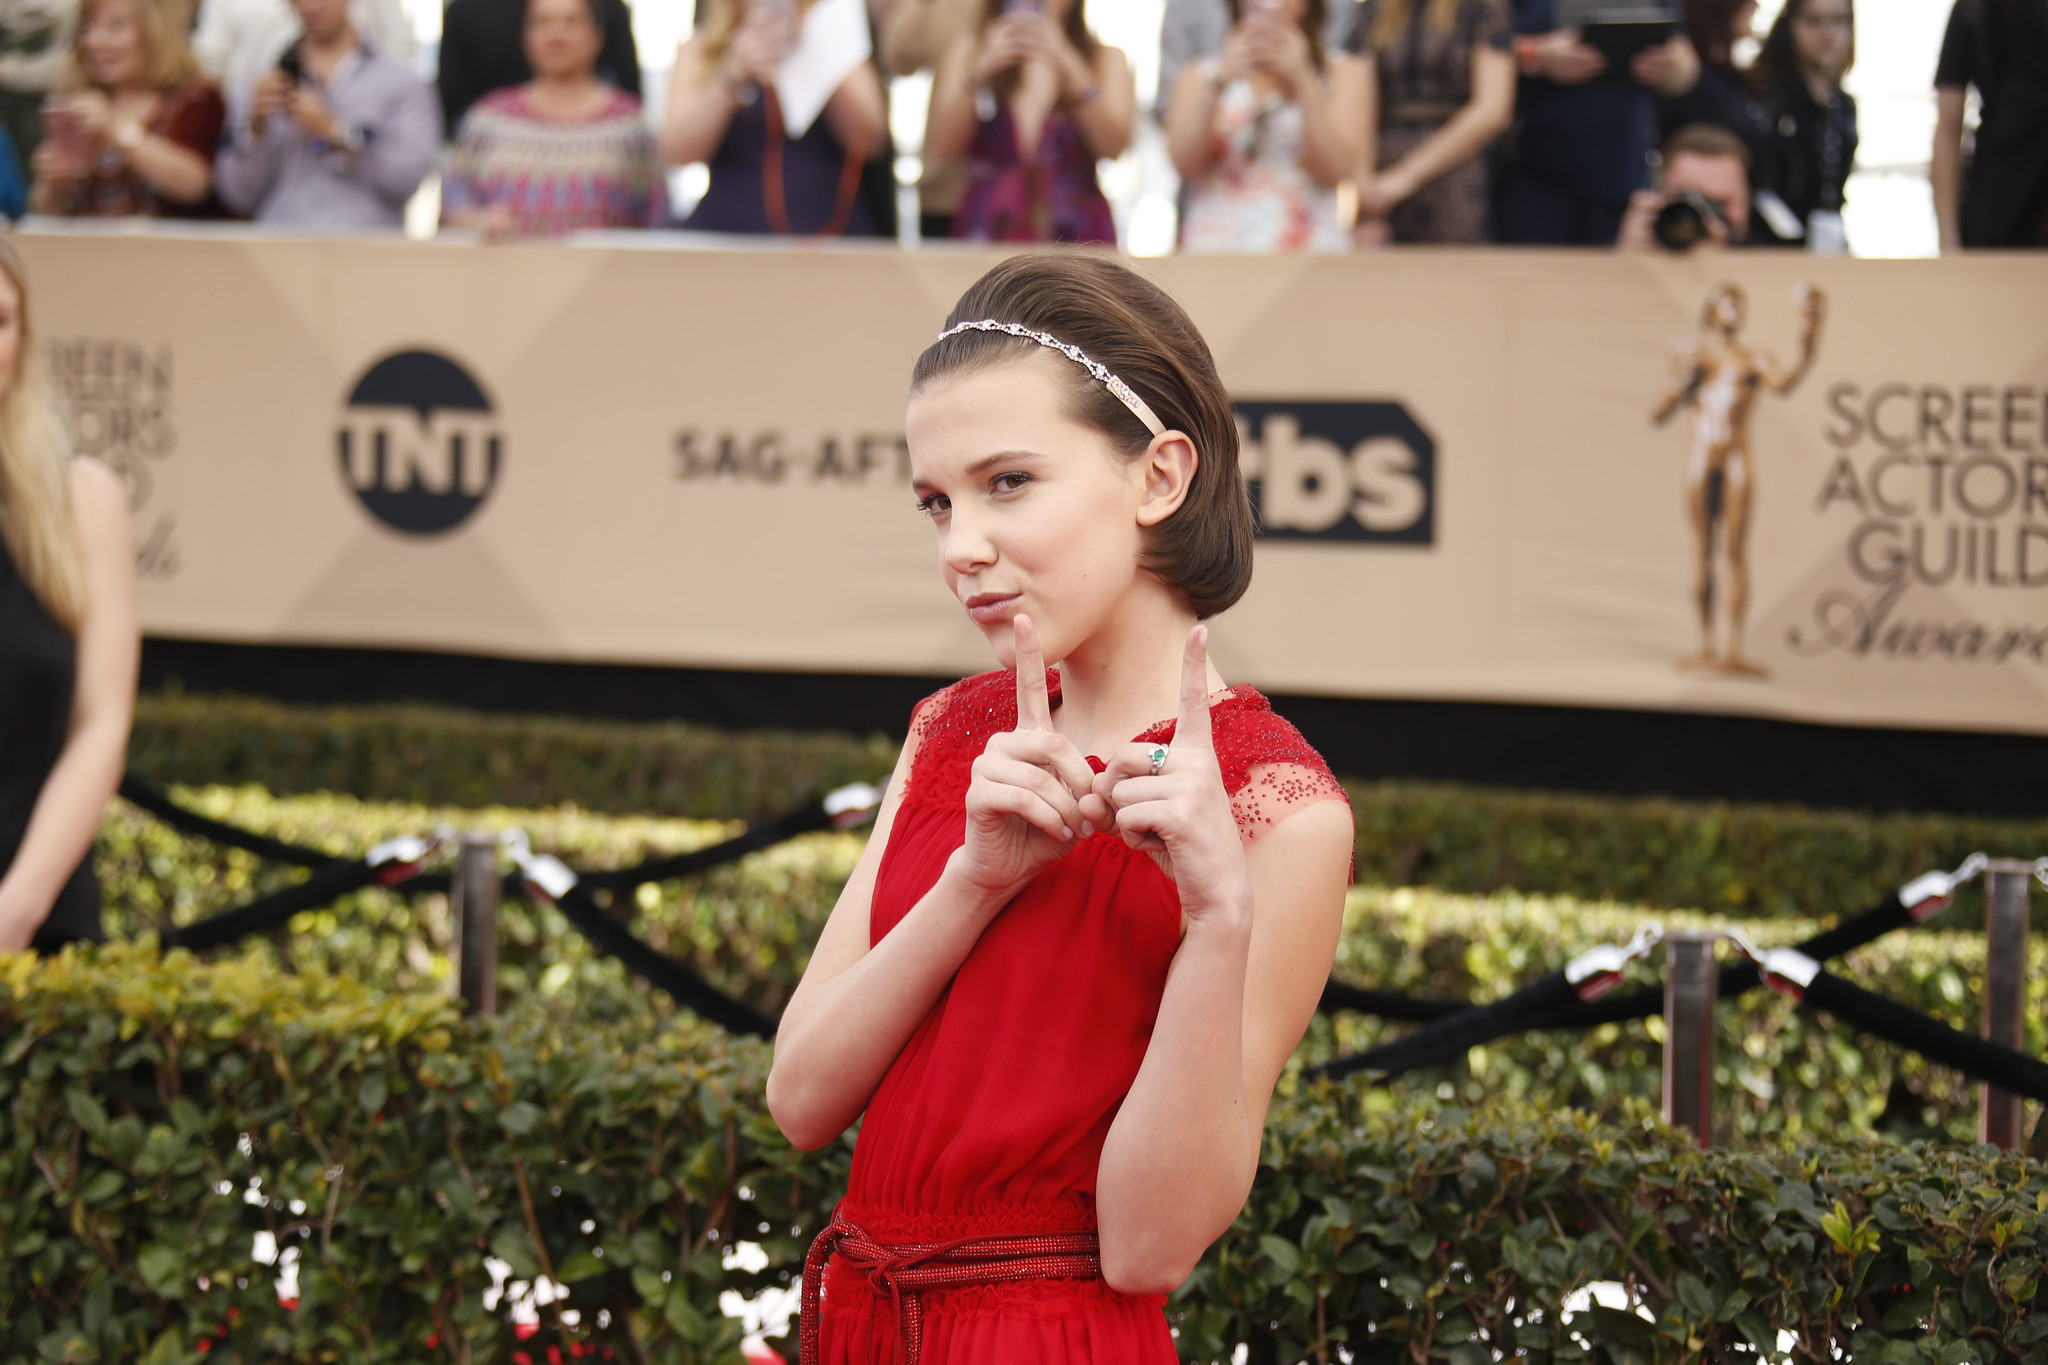 Millie Bobby Brown. (Mark Boster / Los Angeles Times)